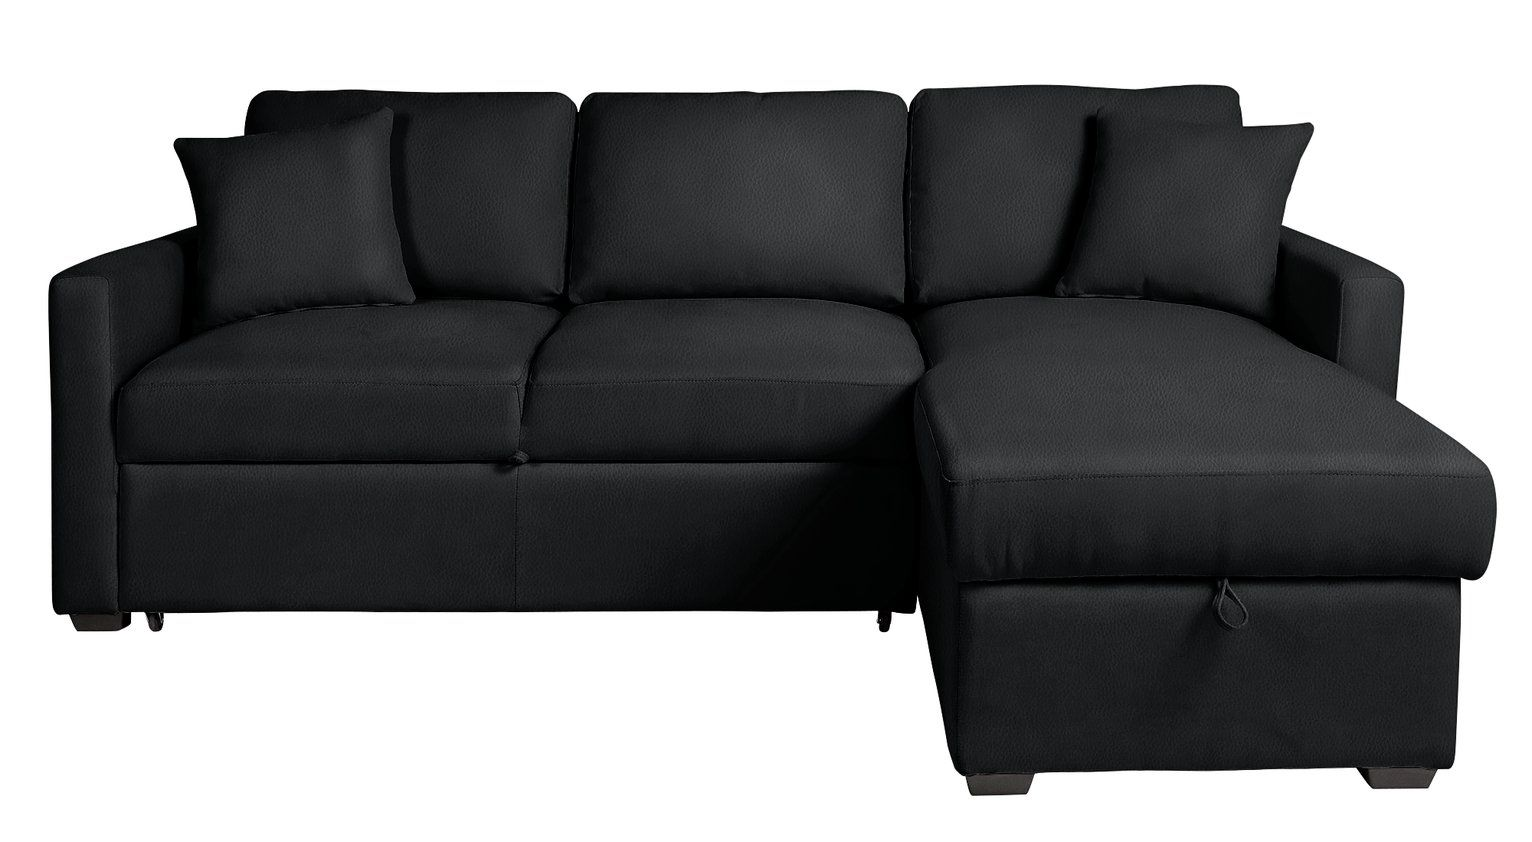 Argos Home Reagan Right Corner Faux Leather Sofa Bed Black In 2020 Faux Leather Sofa Leather Sofa Bed Sofa Bed Black